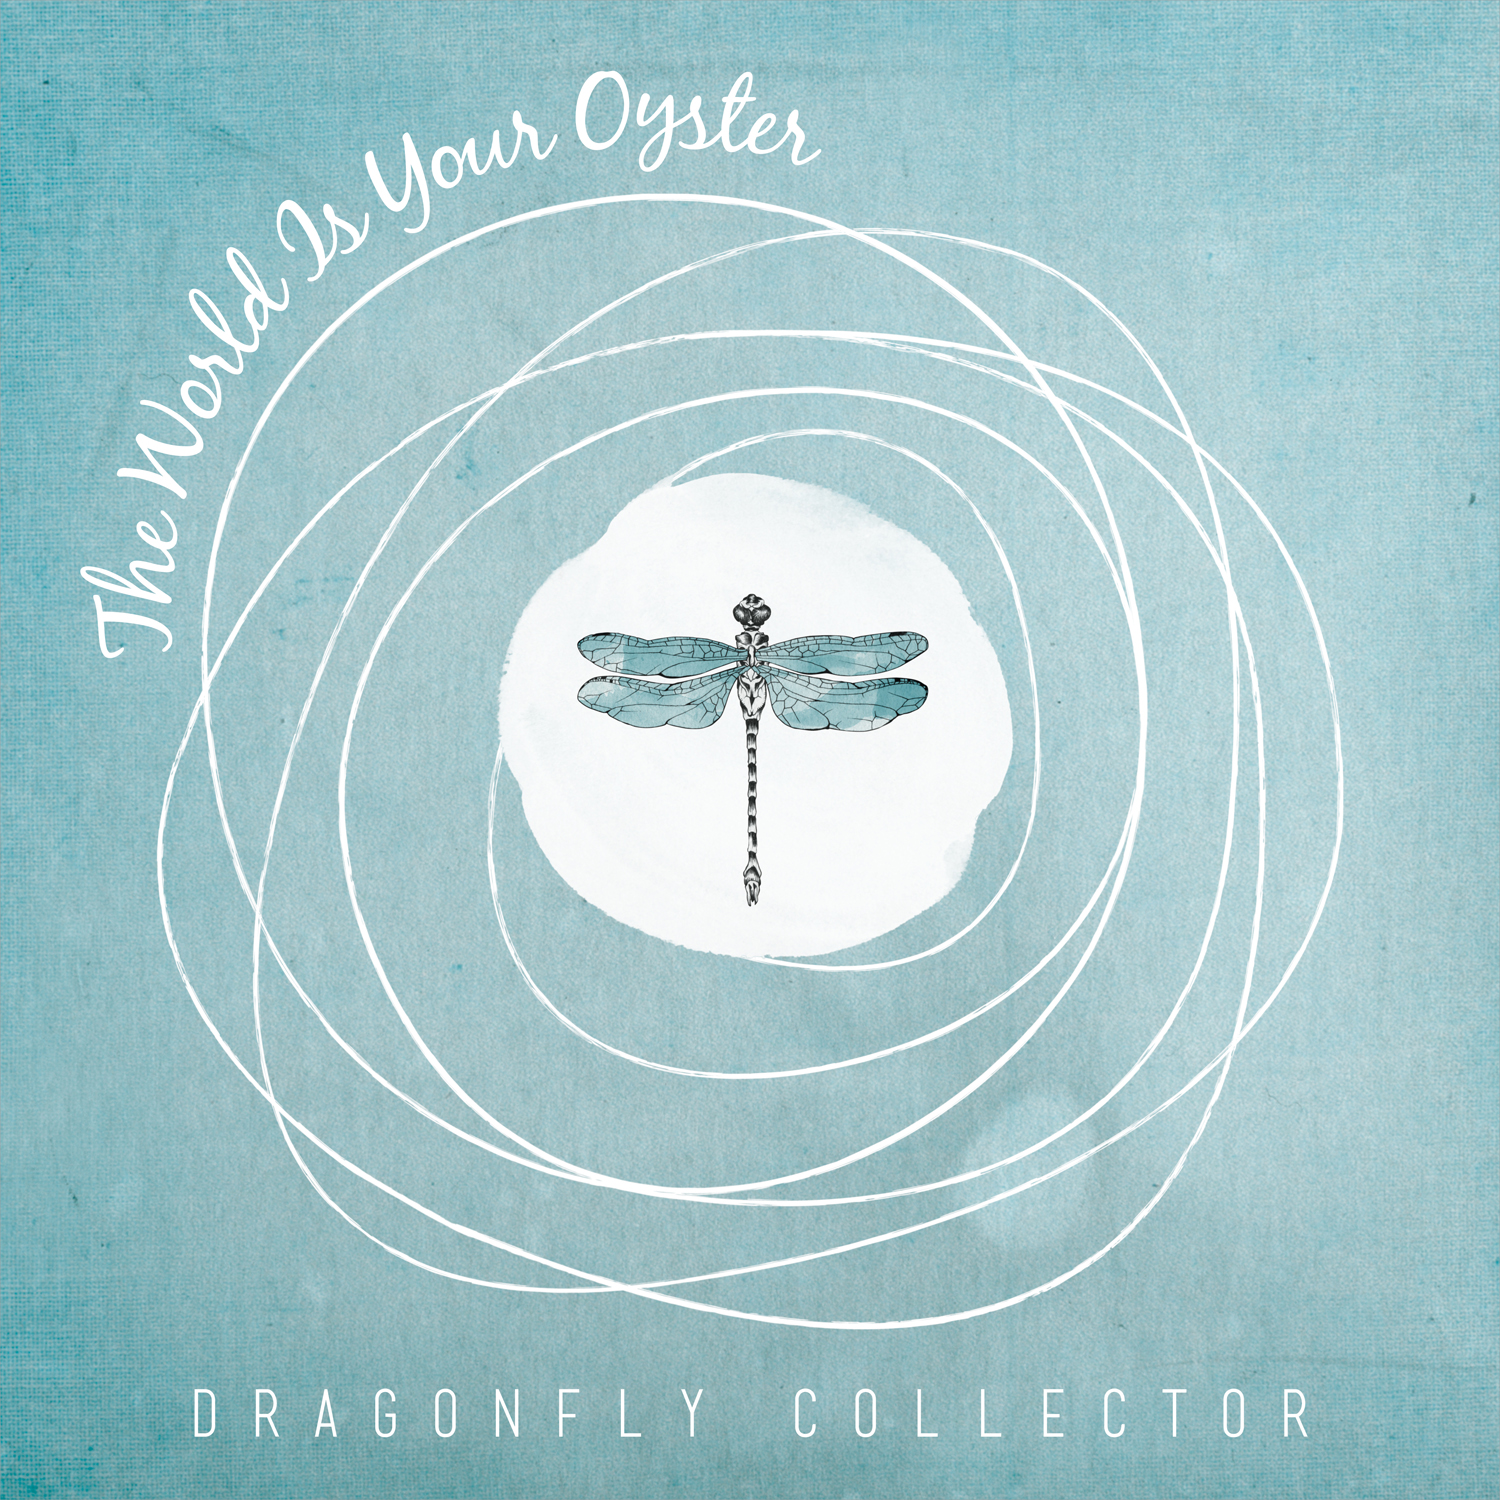 The World Is Your Oyster - Dragonfly Collector (CD Album) - LILYSTARS RECORDS